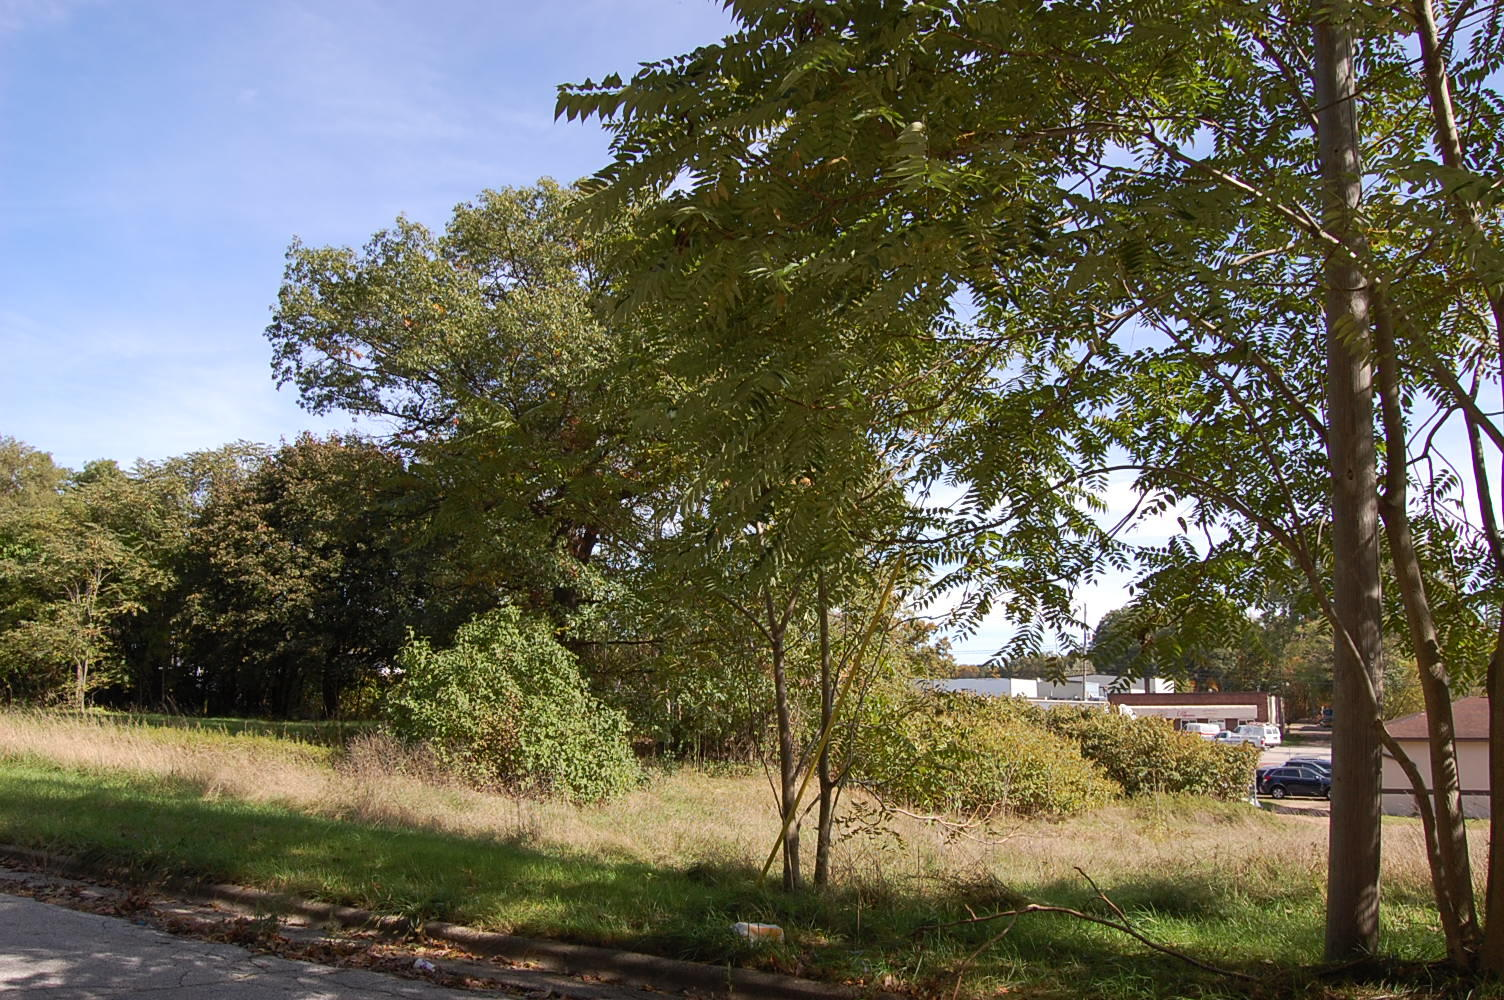 Invest in Your Dream Business With This Michigan Commercial Parcel - Image 1